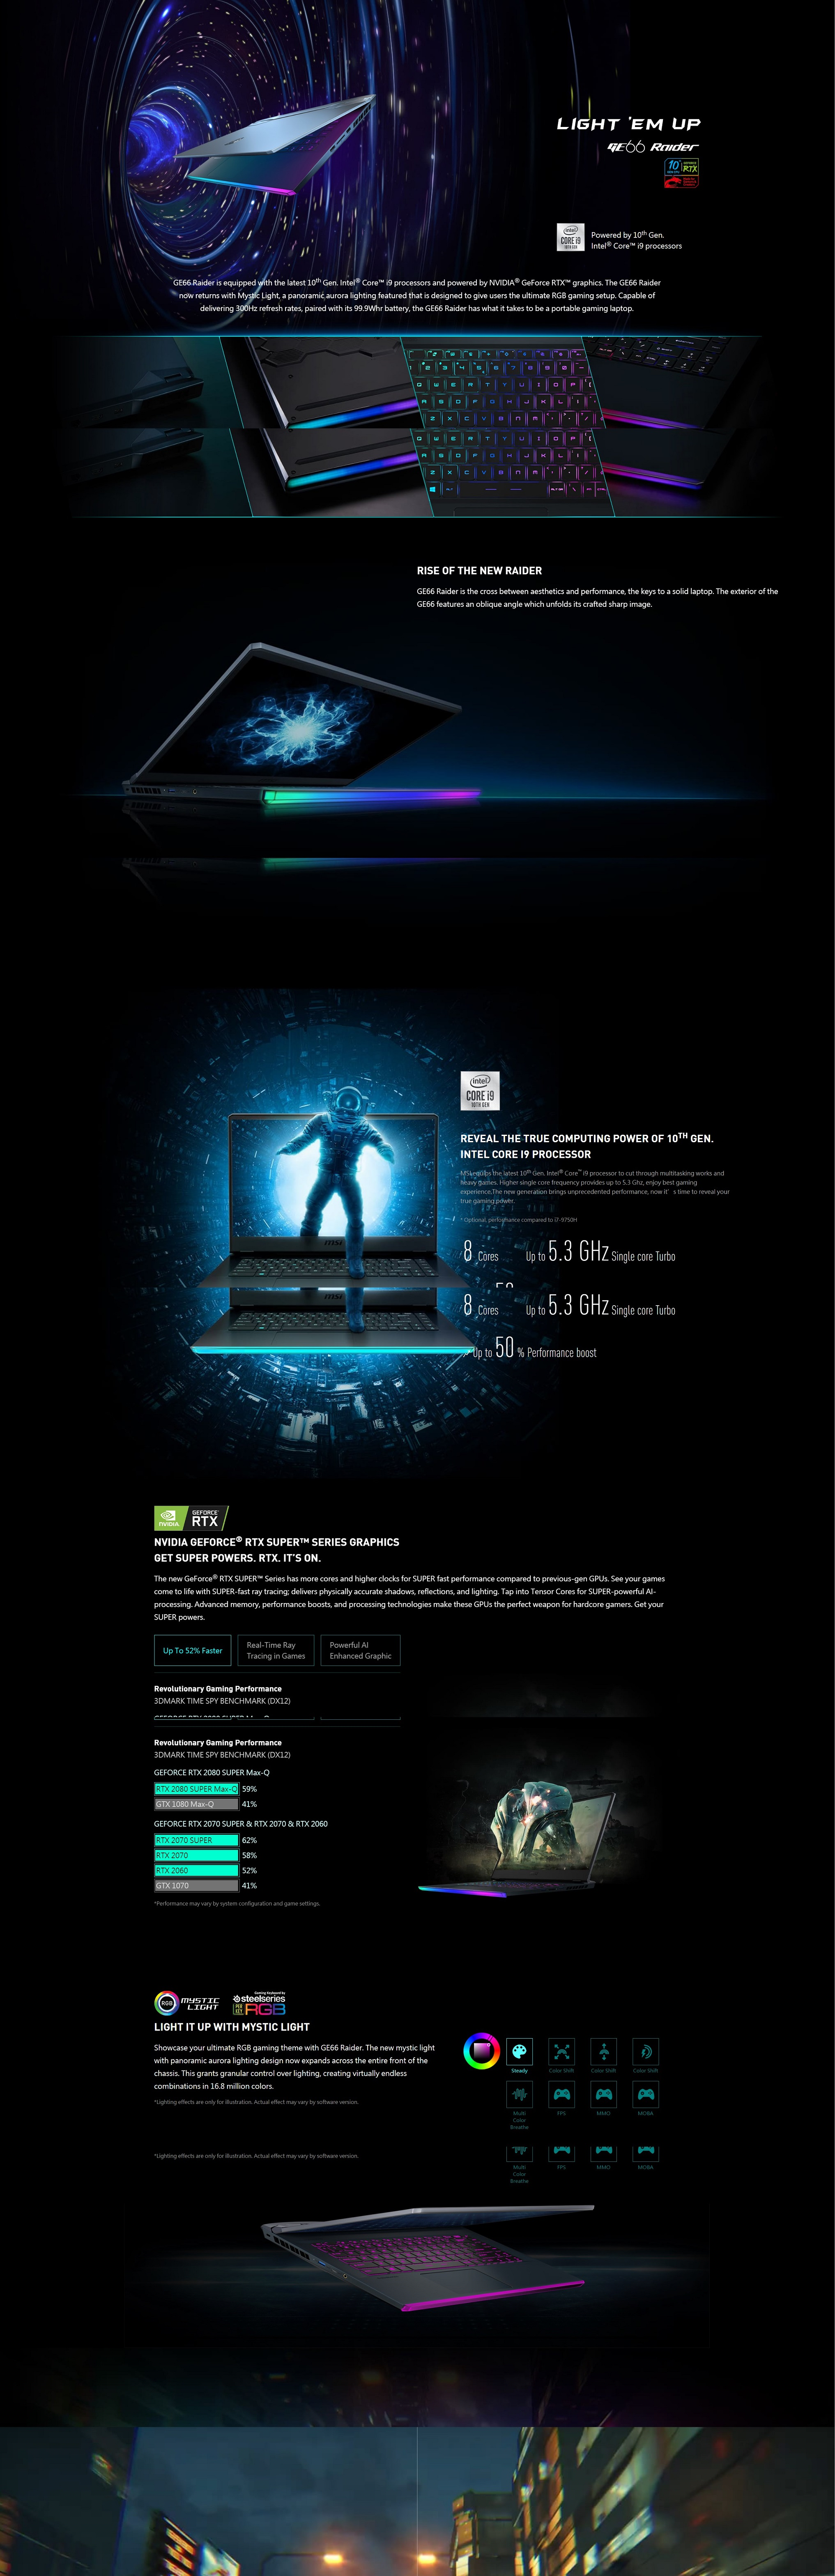 """A large marketing image providing additional information about the product MSI GE66 Raider 10SE 15.6"""" i7 10th Gen RTX 2060 Windows 10 Gaming Notebook - Additional alt info not provided"""